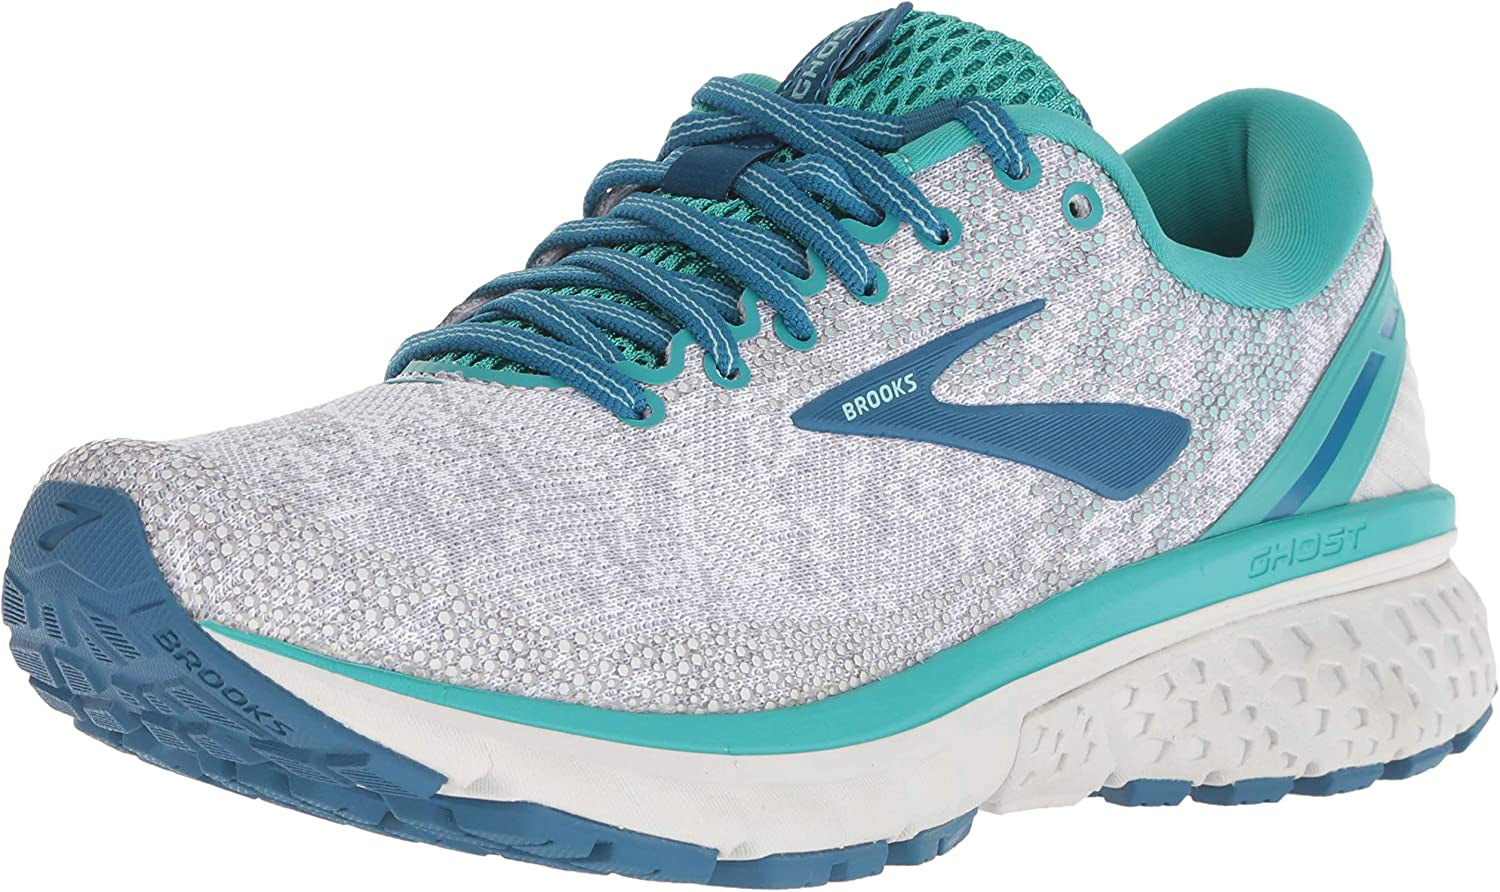 Brooks damen 39;s Ghost Ghost 11  Bis zu 60% Rabatt